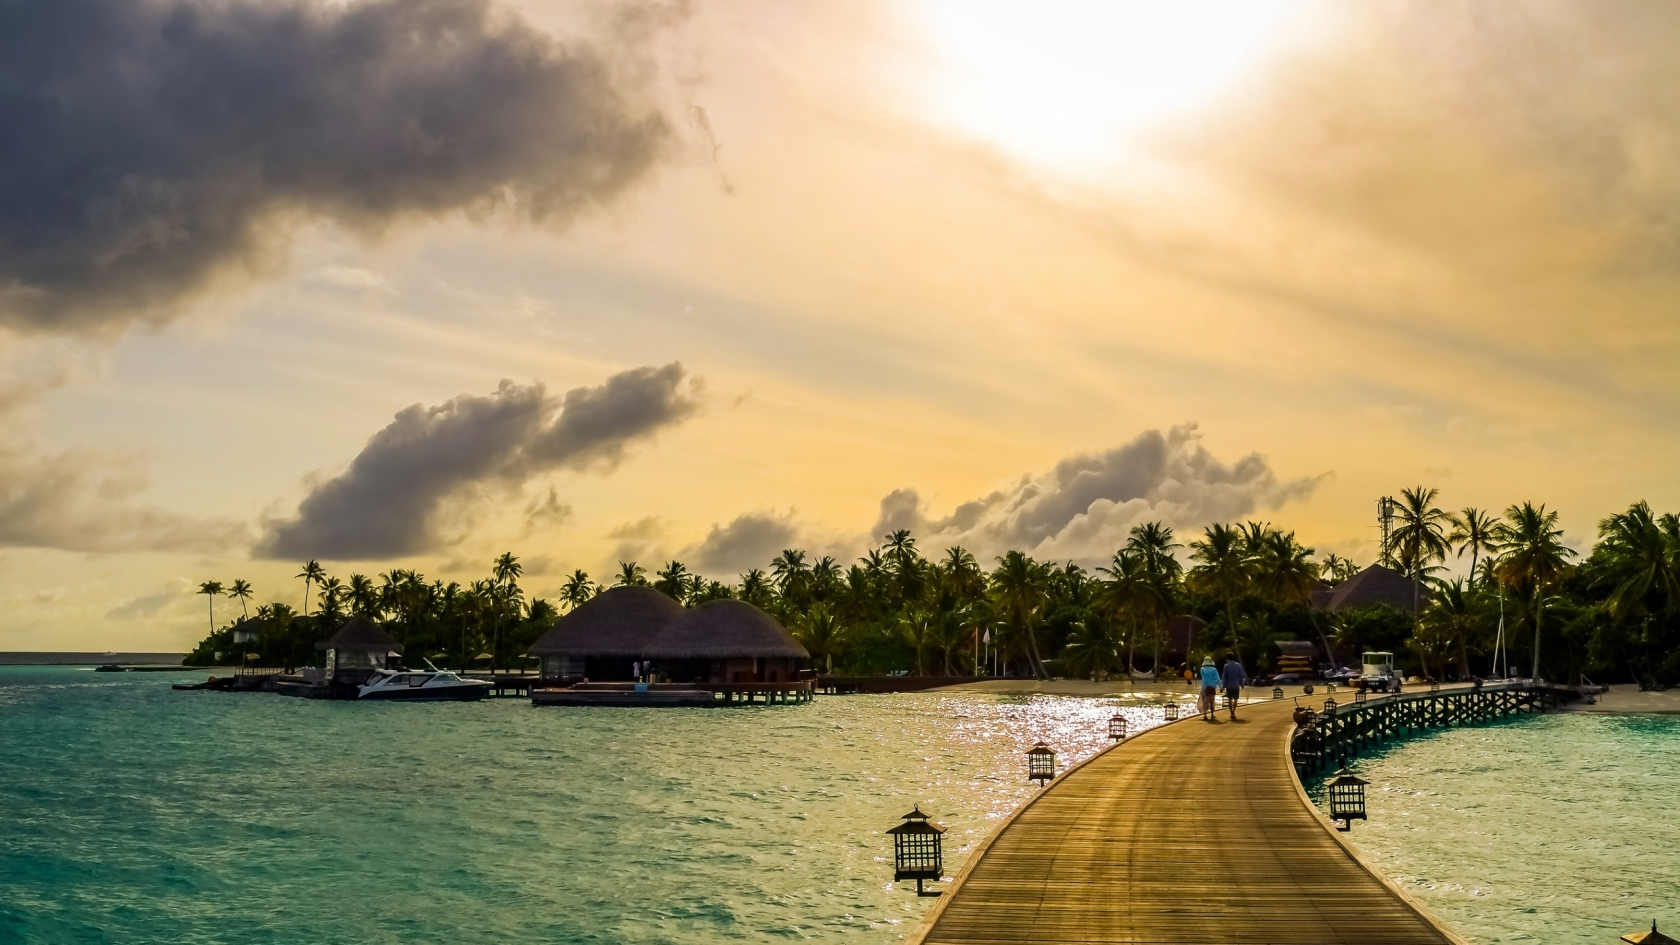 Exotic Maldives Beach for 1680 x 945 HDTV resolution